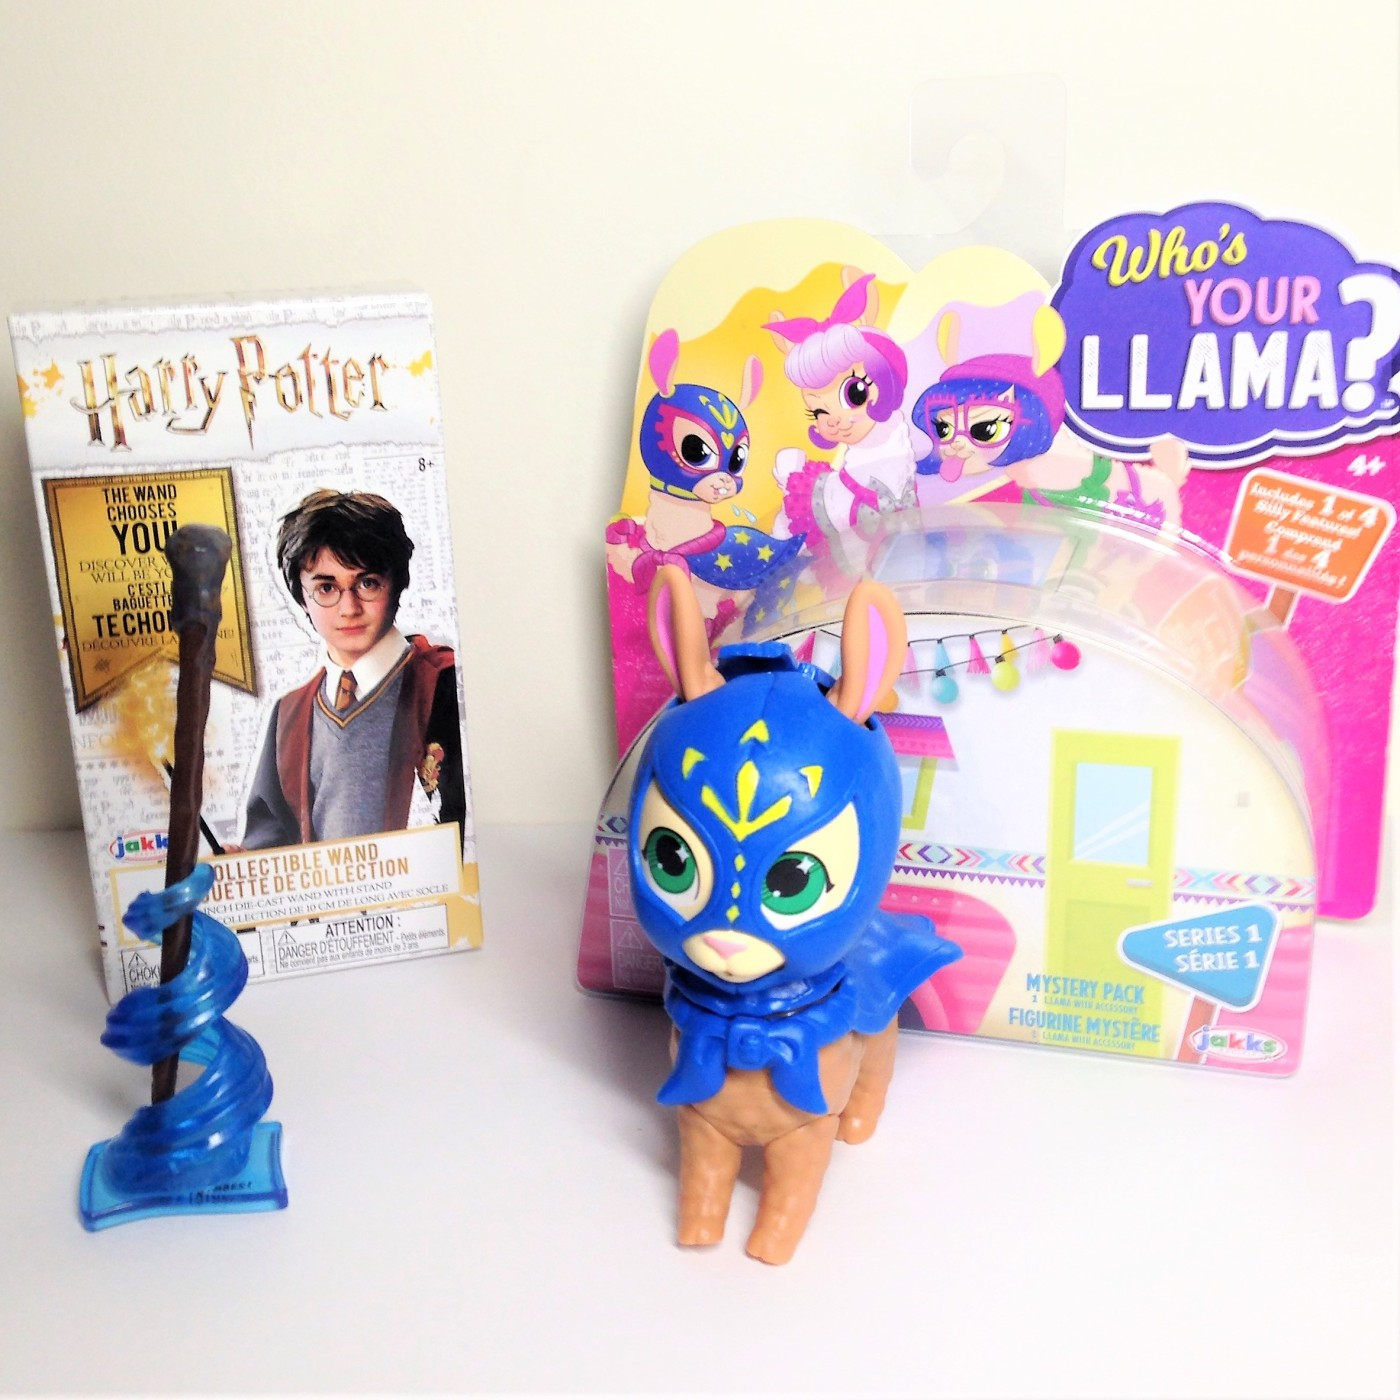 Jakks pacific Who's your llama and Harry Potter wand collectibles review